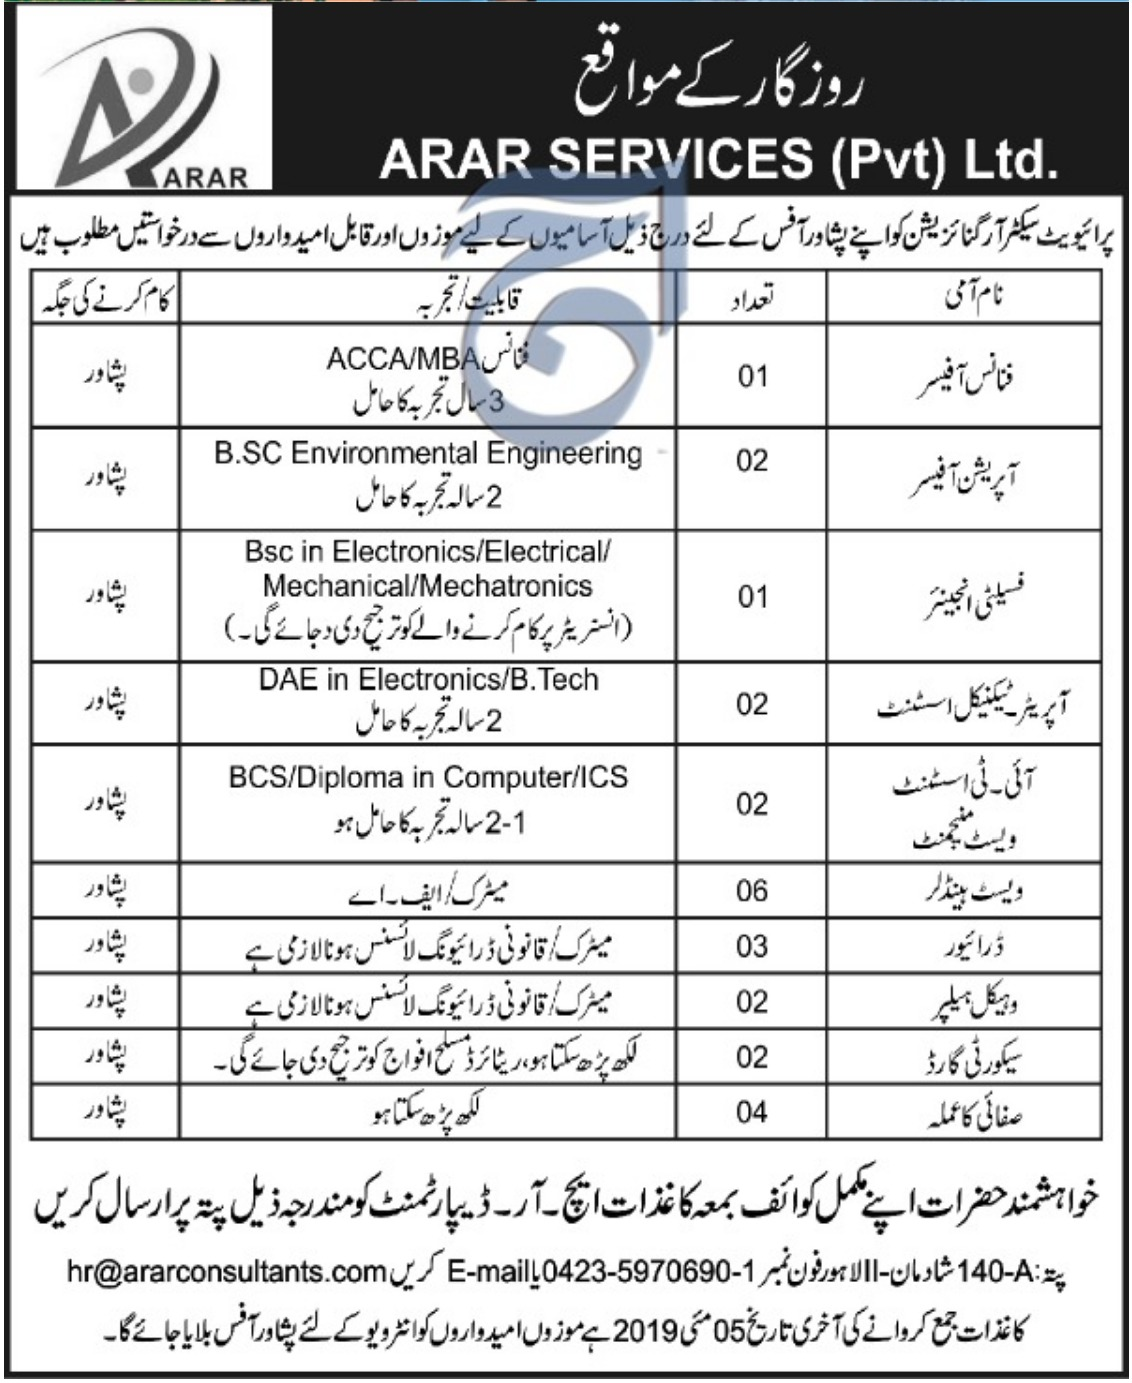 ARAR Services Pvt Ltd Jobs 2019 Peshawar KPK Latest